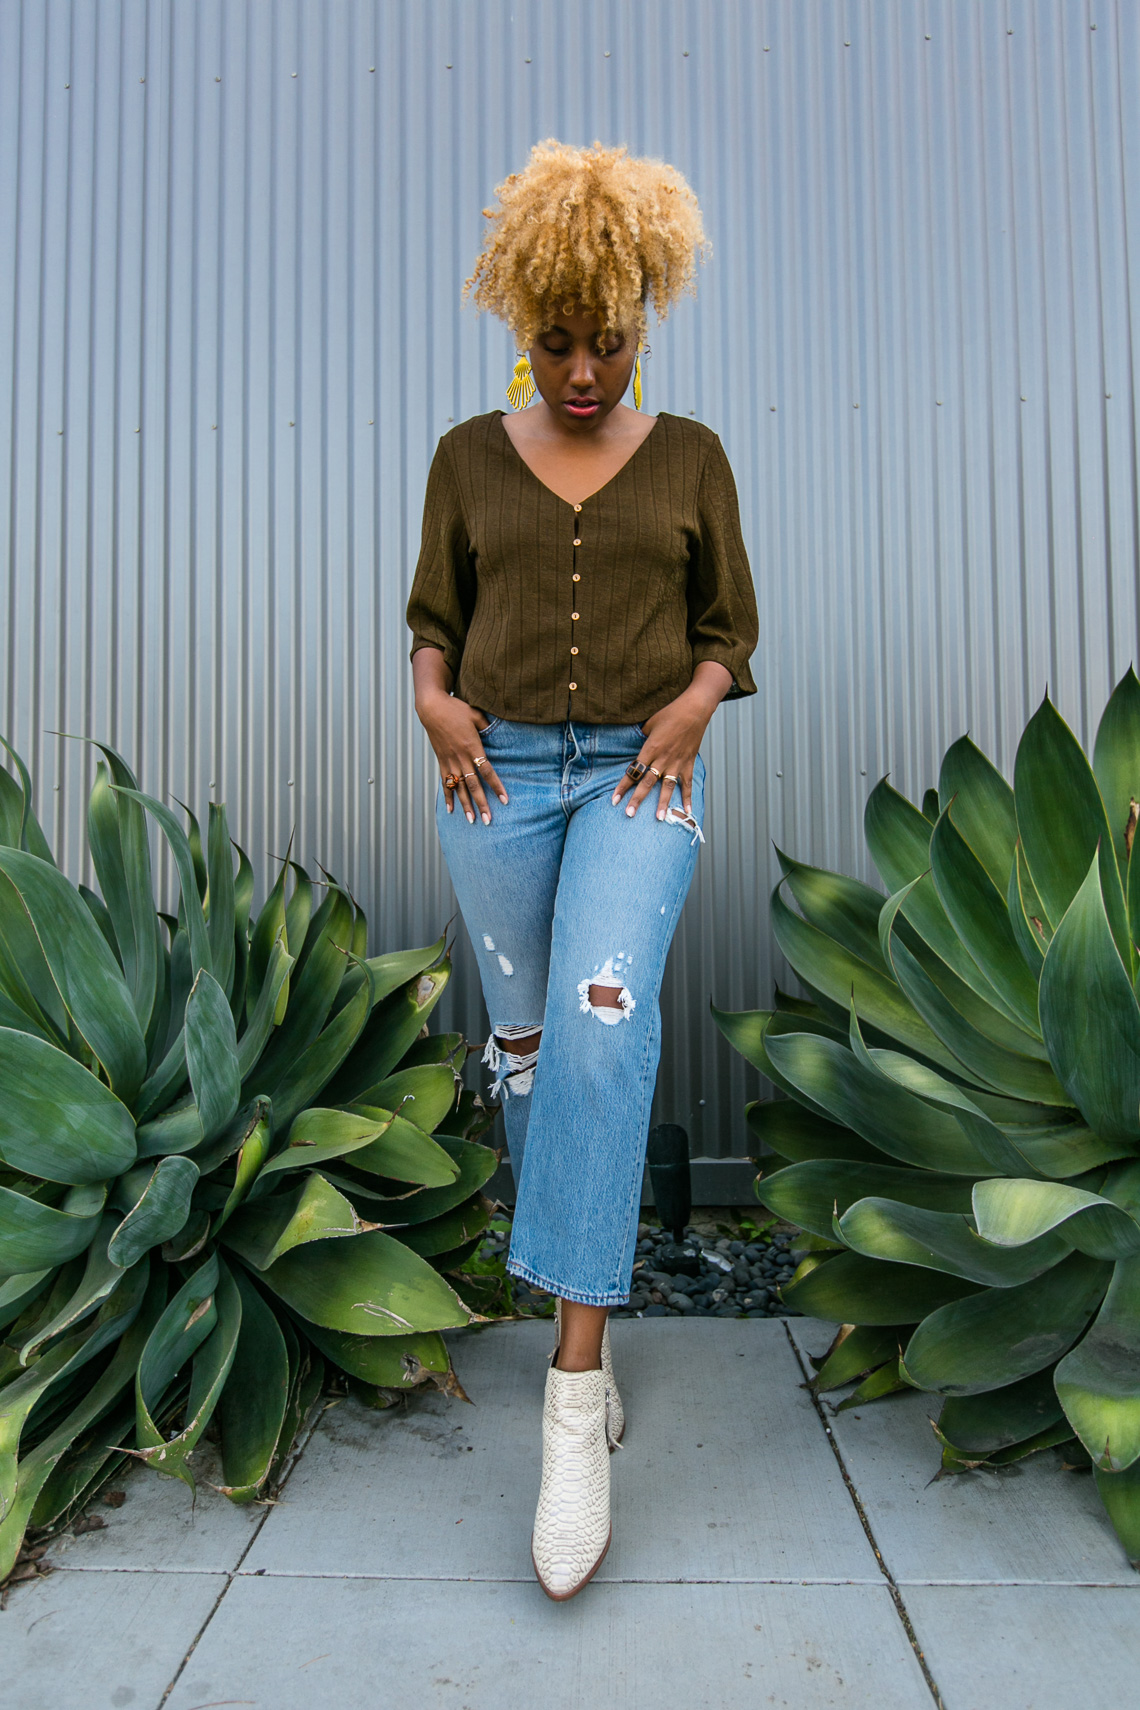 levis-wedgie fit jeans-live clothes minded-wear who you are-h&m blouse